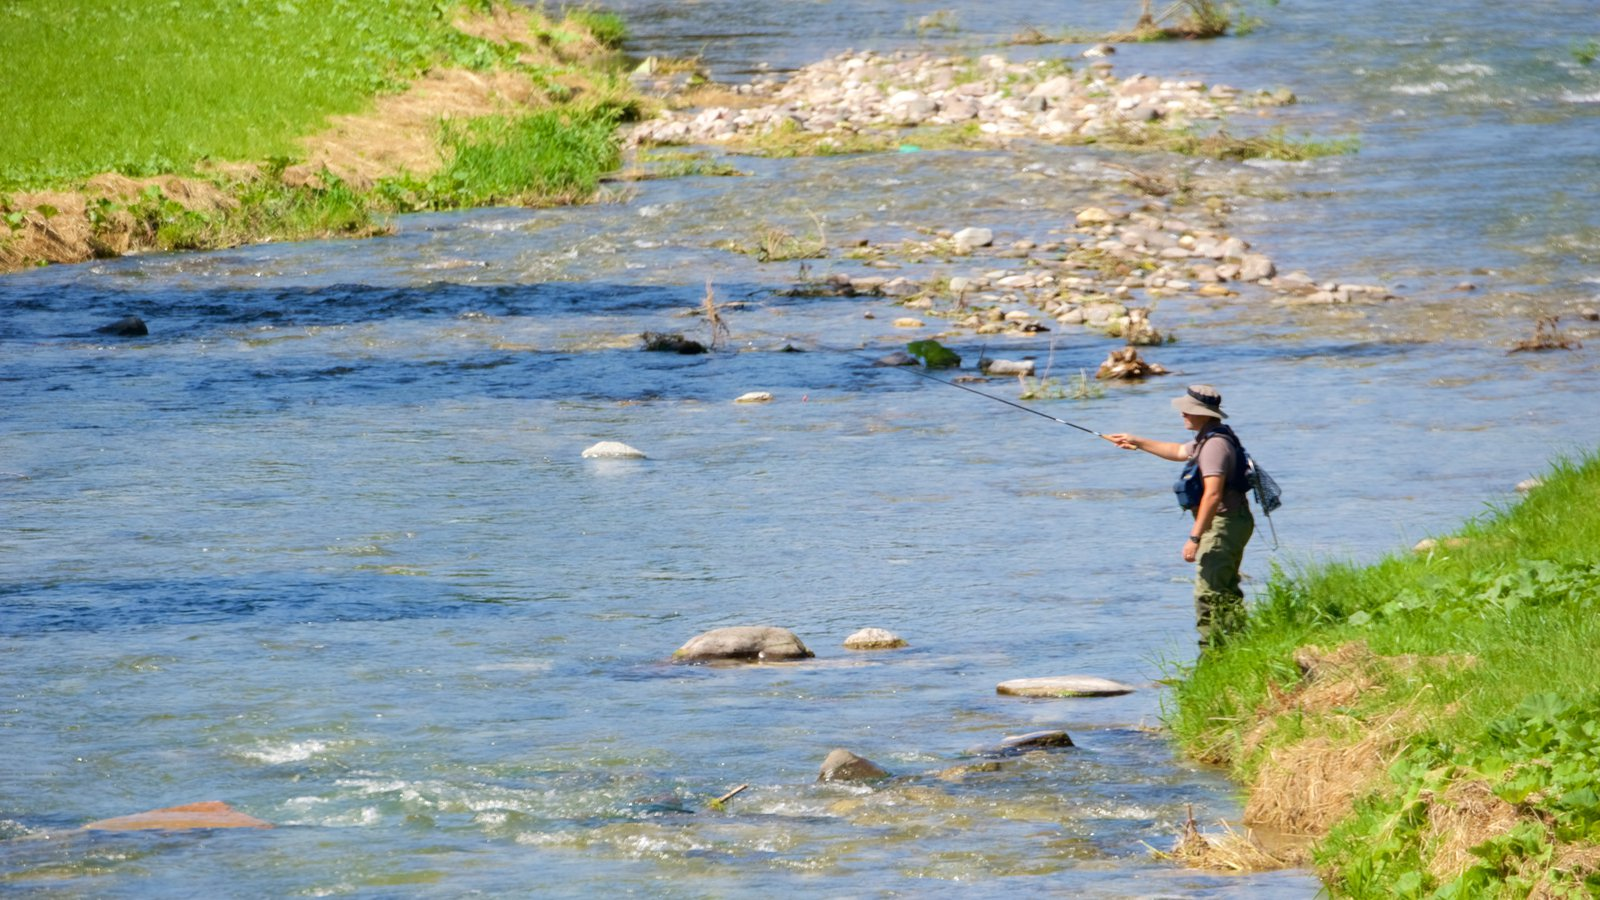 Moena featuring fishing and a river or creek as well as an individual male